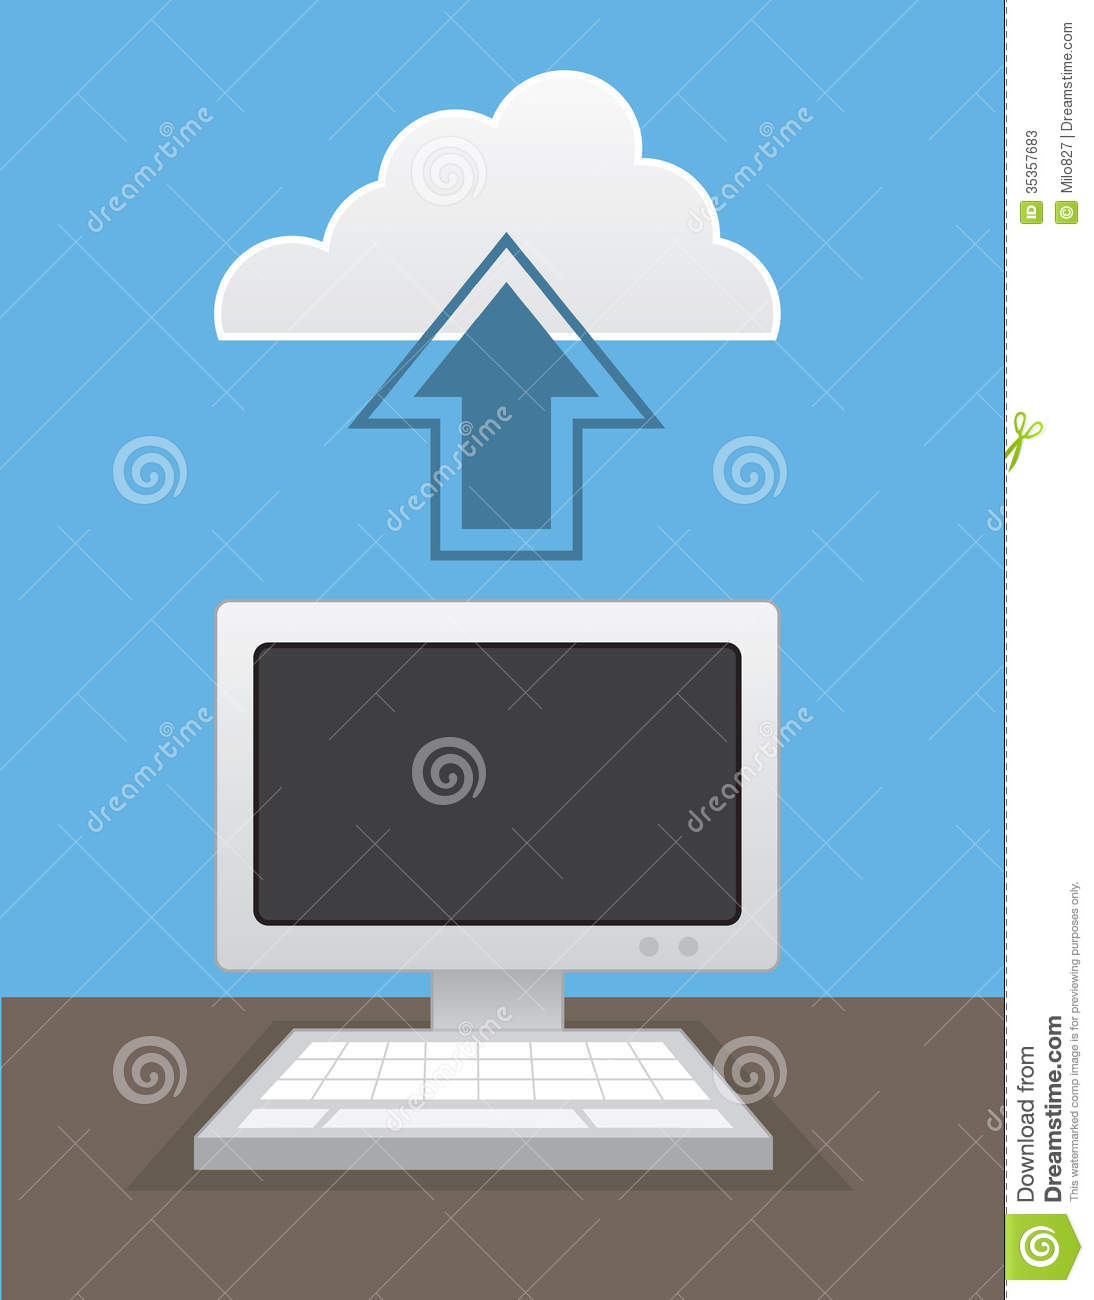 computer-upload-cloud-uploading-to-35357683.jpg: dreamstime.com/stock-photos-computer-upload-cloud-uploading-to...